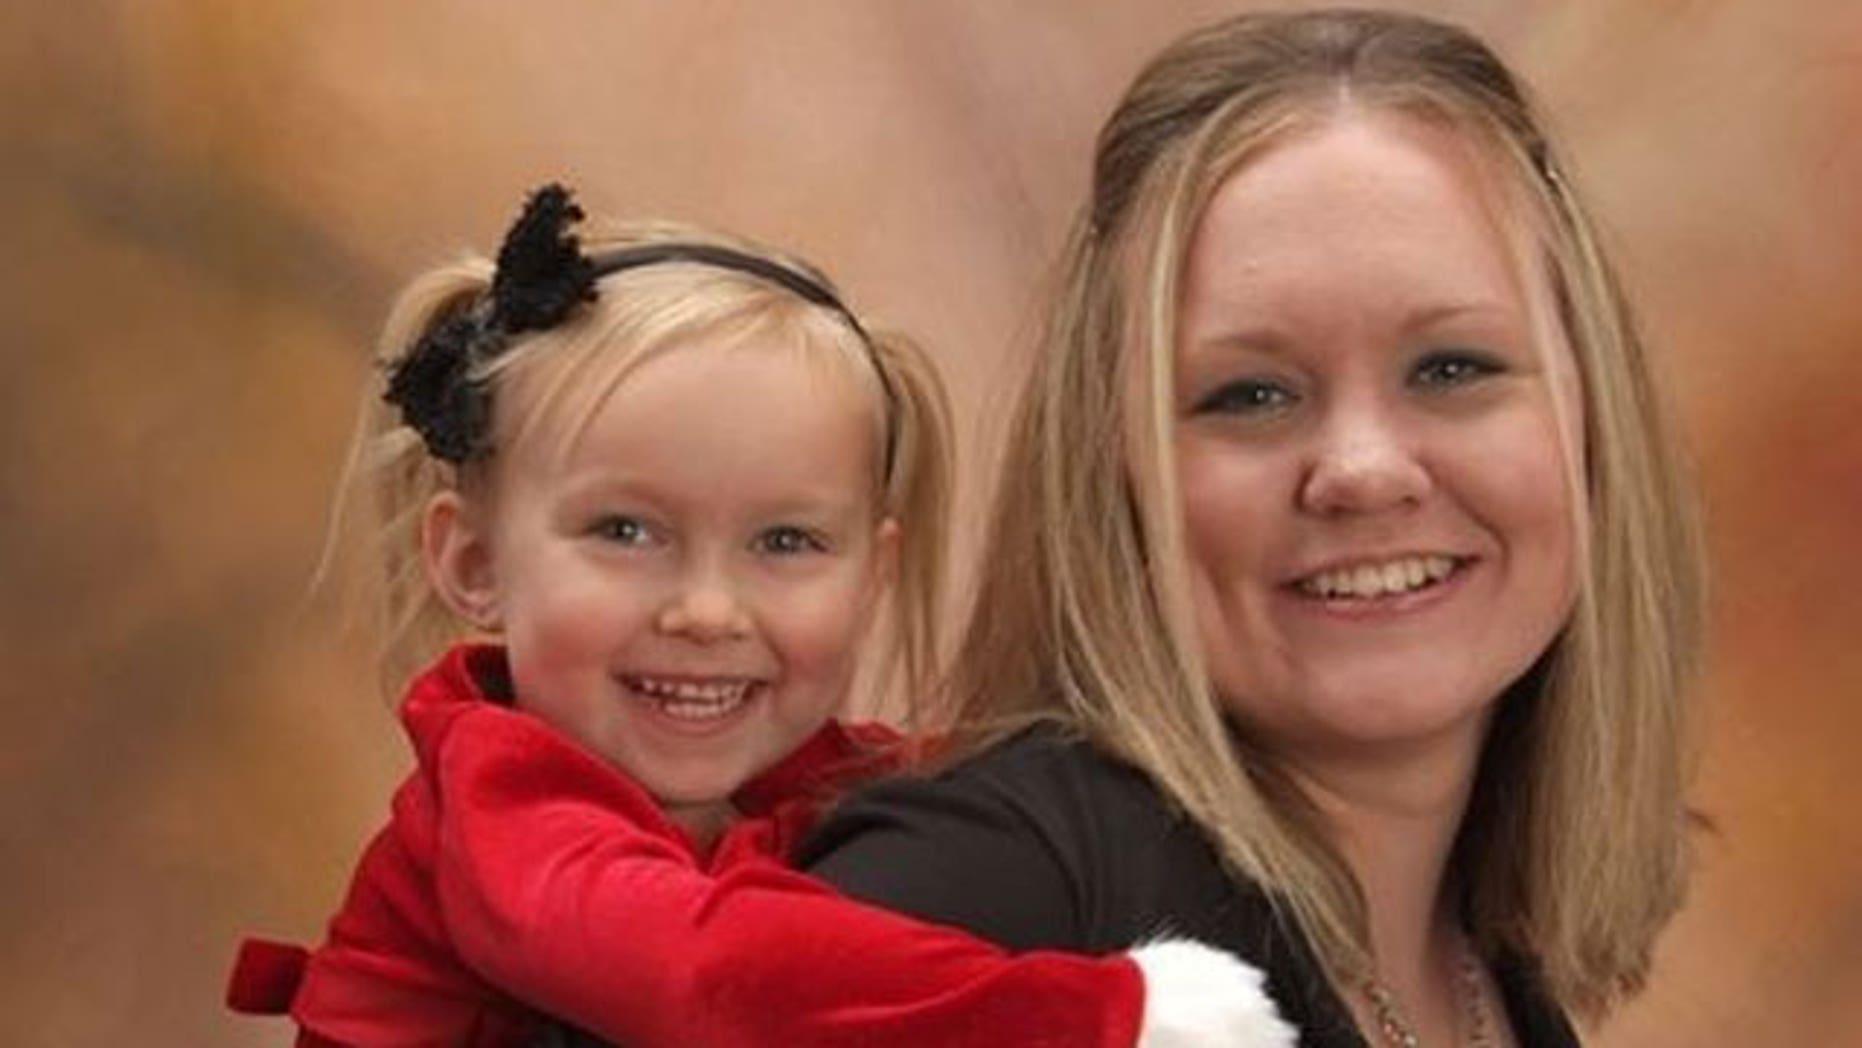 Melissa Amen and her 3-year-old daughter, Kayah, whom she conceived after the death of her husband through assisted reproductive technology. (Melissa Amen)